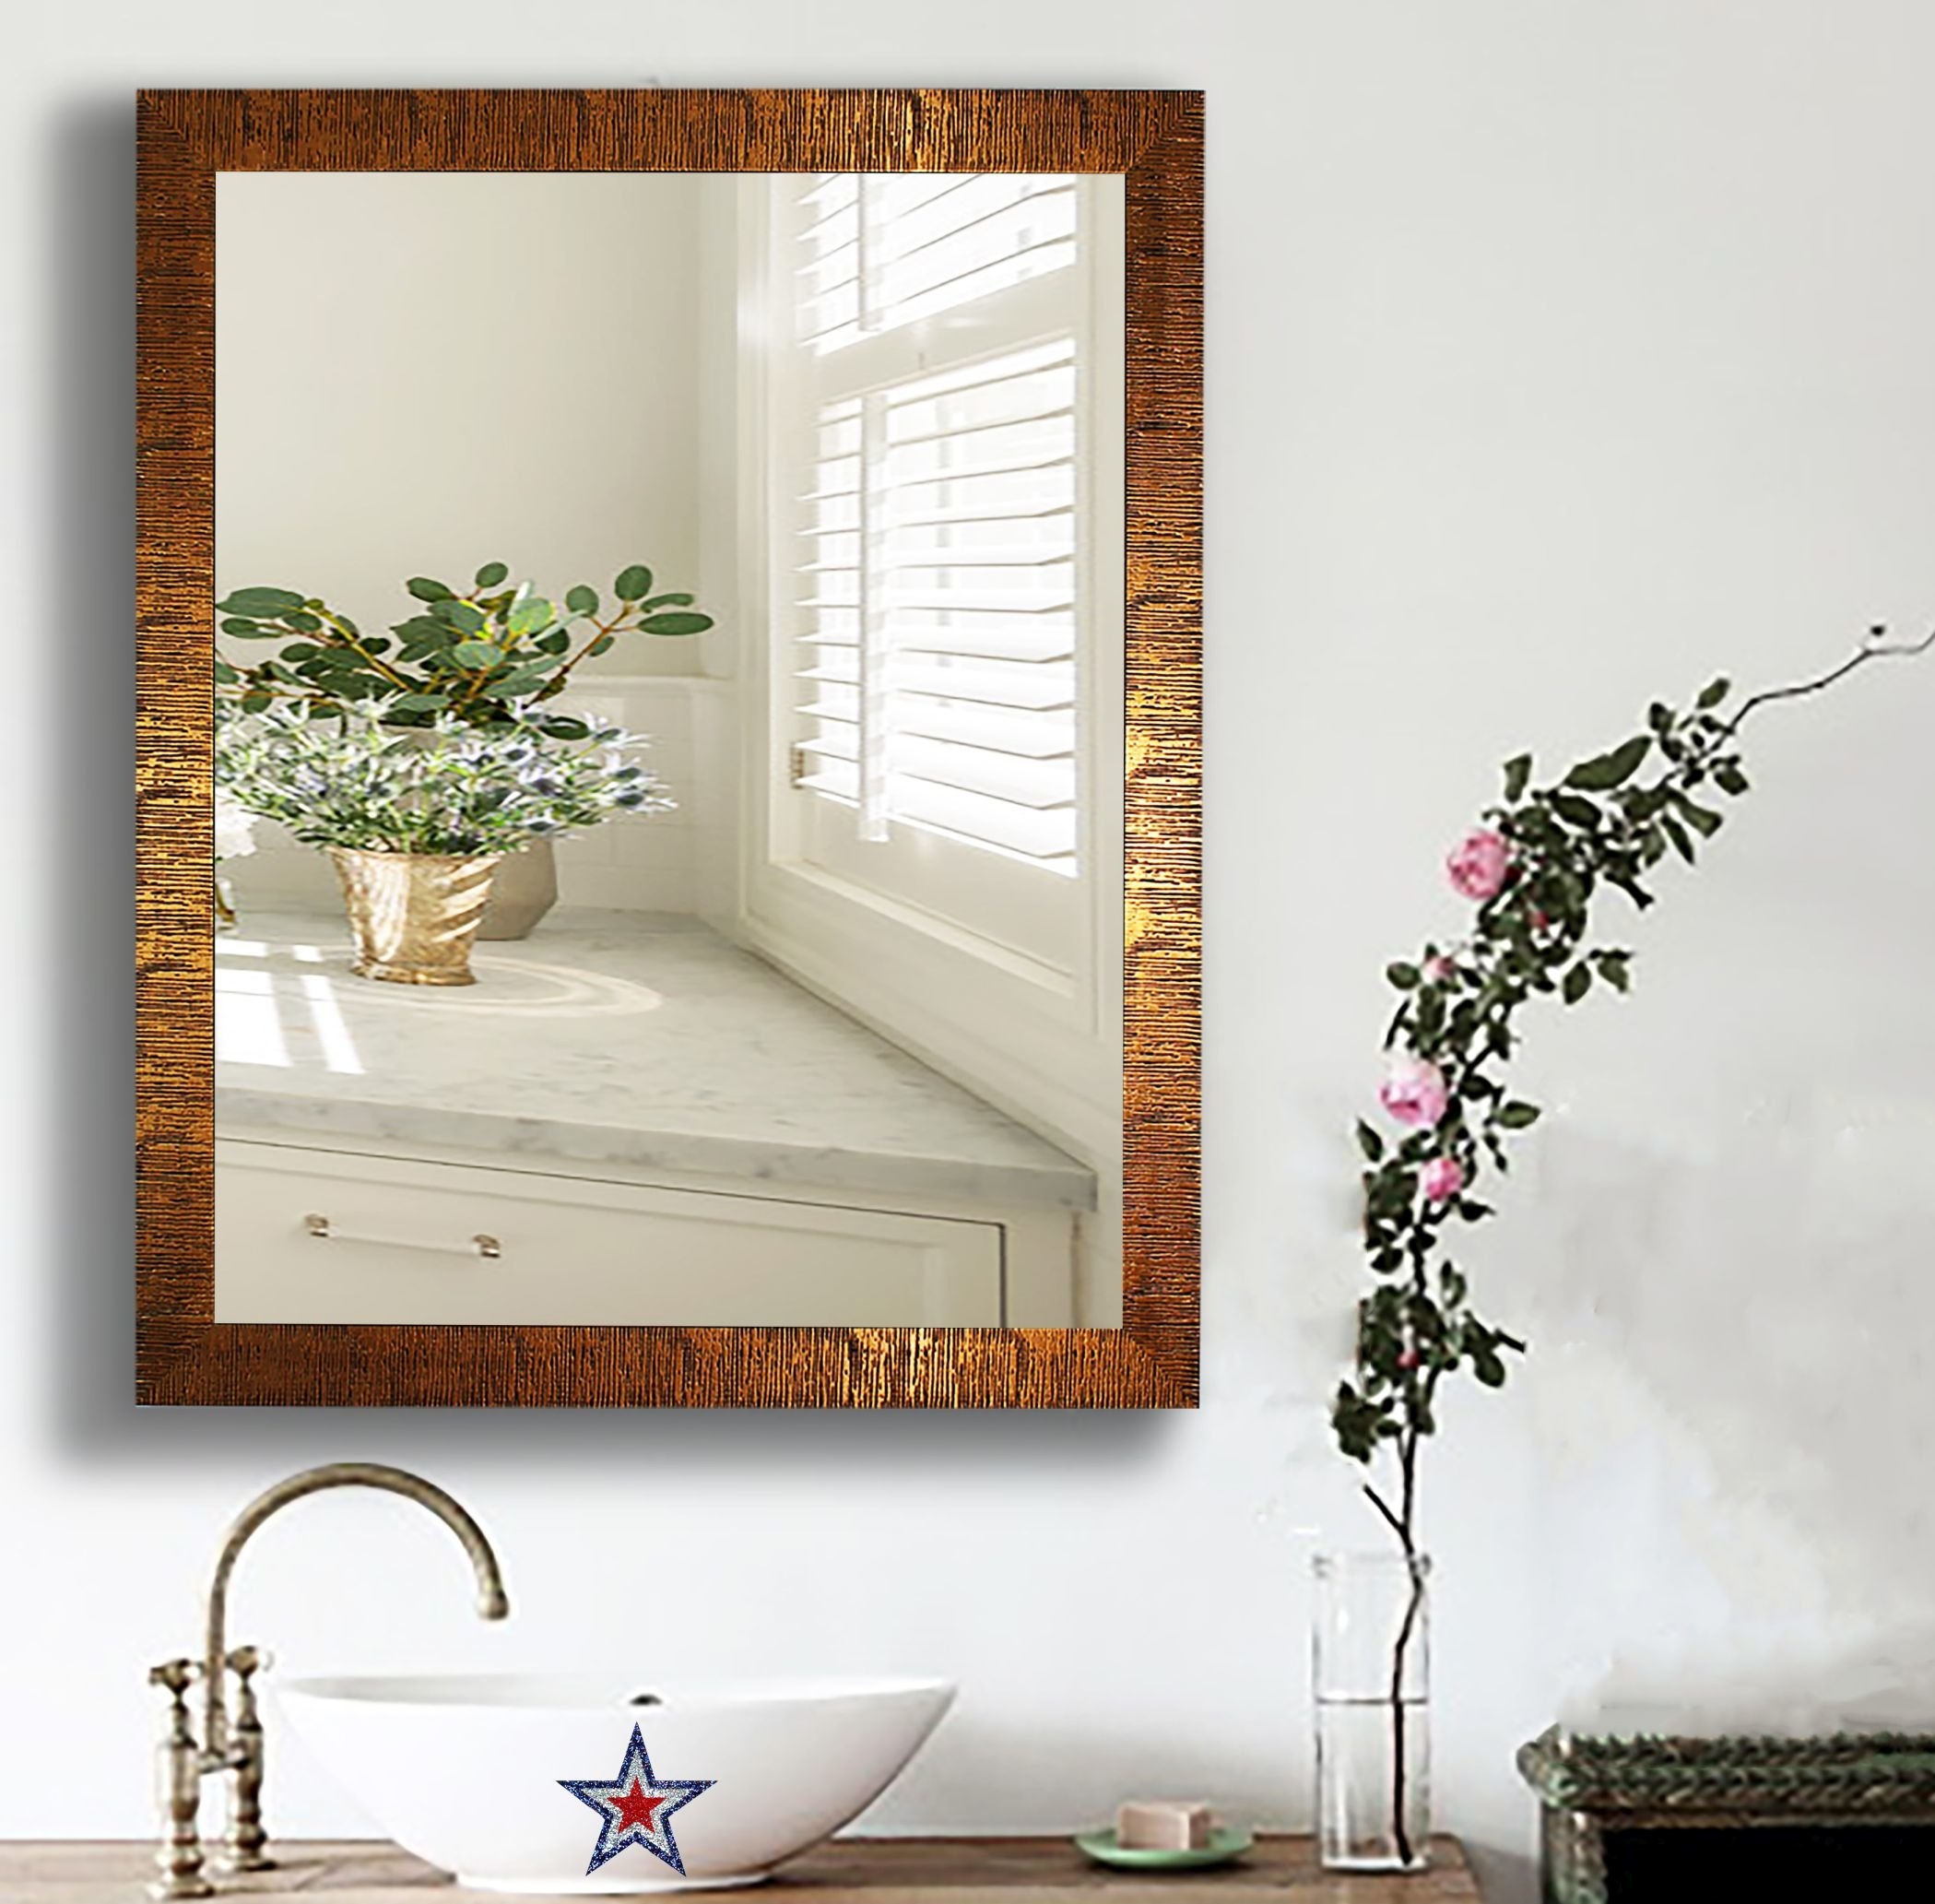 Skeete Traditional Wall Mirror In Epinal Shabby Elegance Wall Mirrors (View 18 of 20)